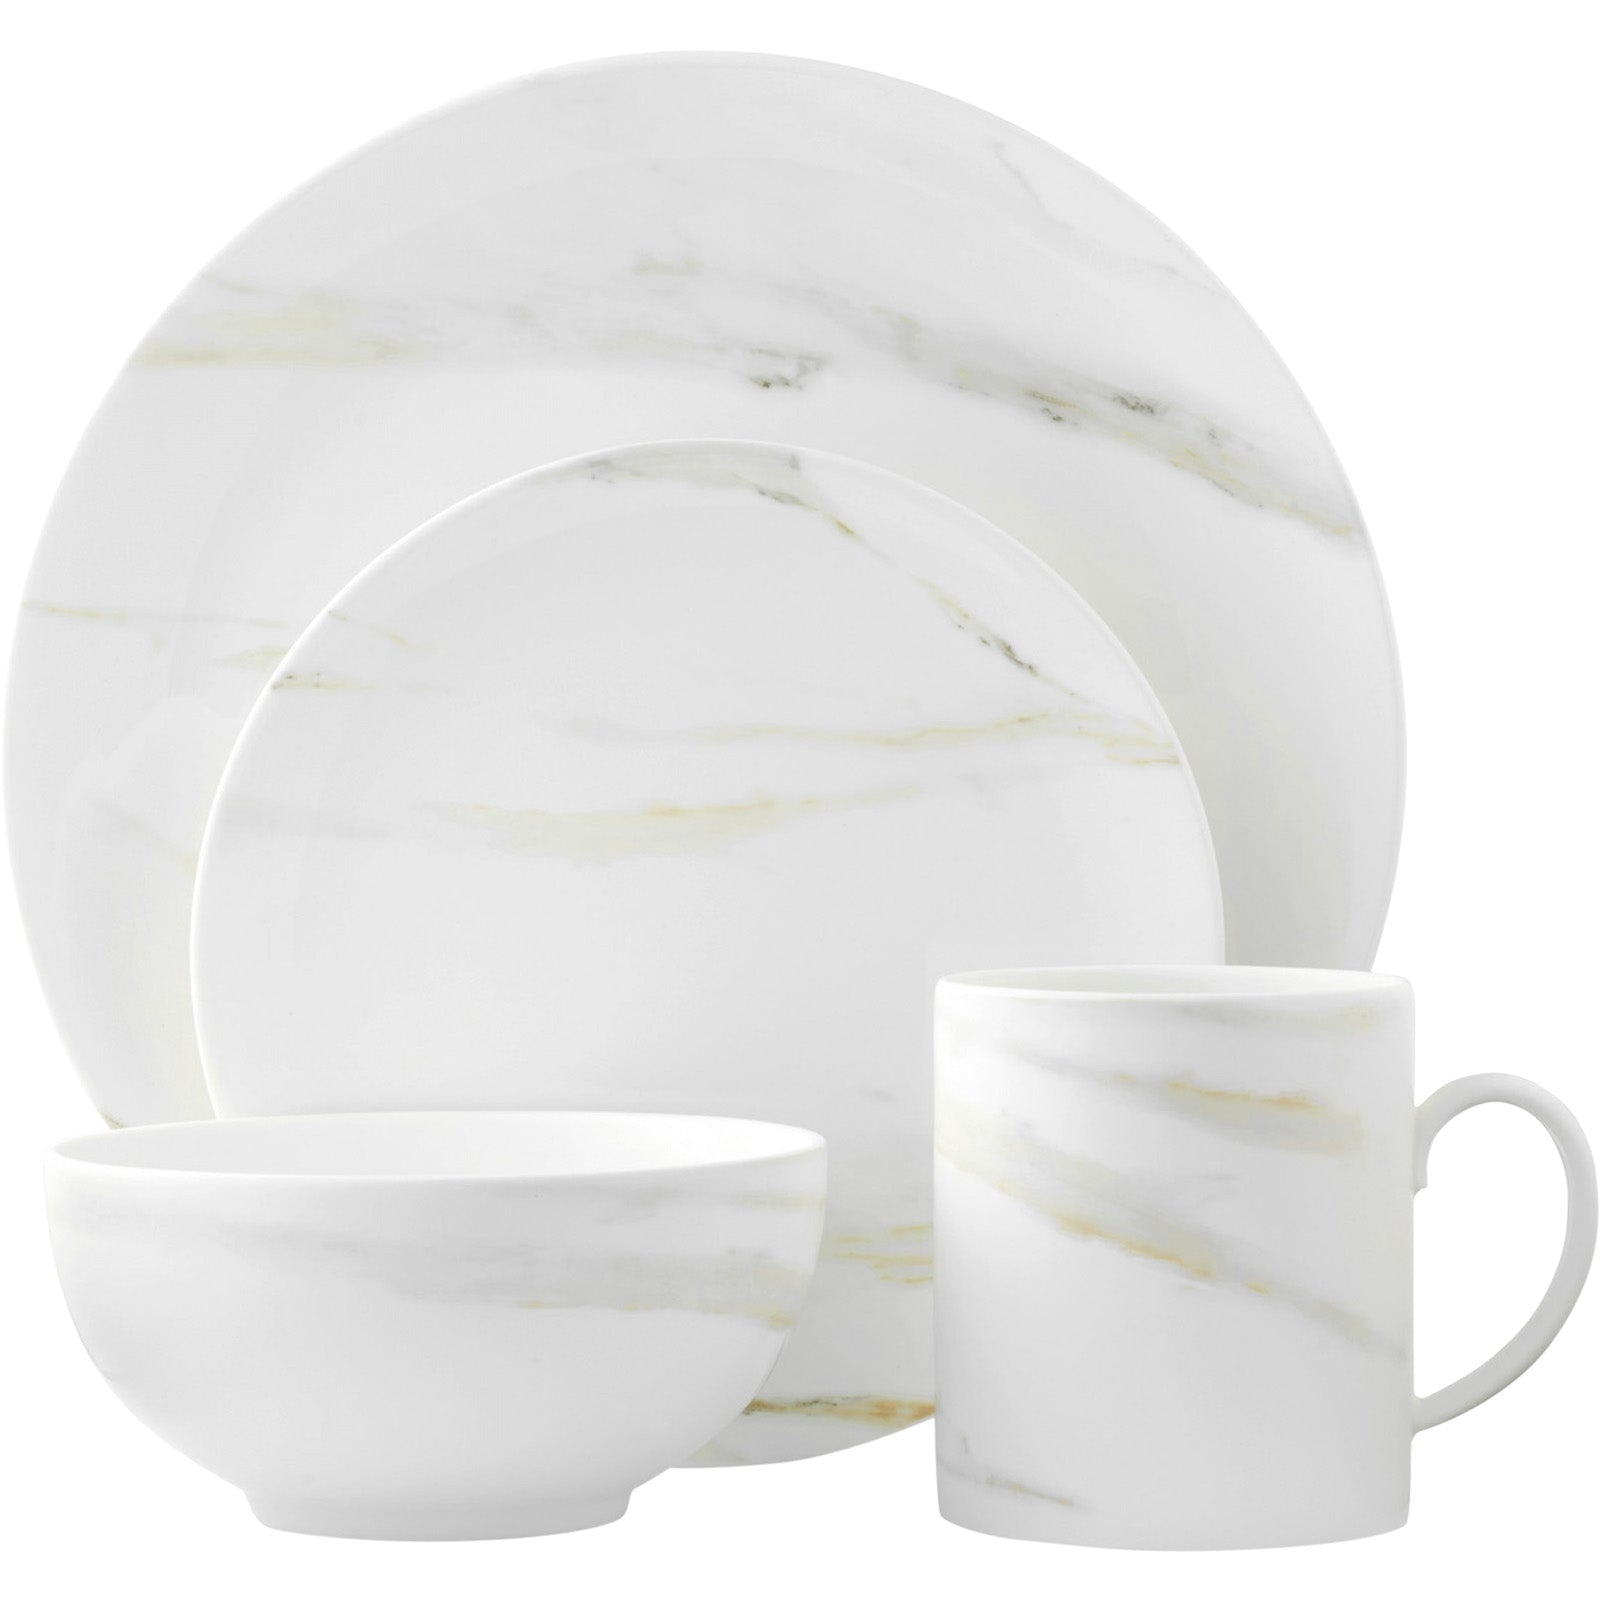 Venato Imperial 4 Piece Place Setting